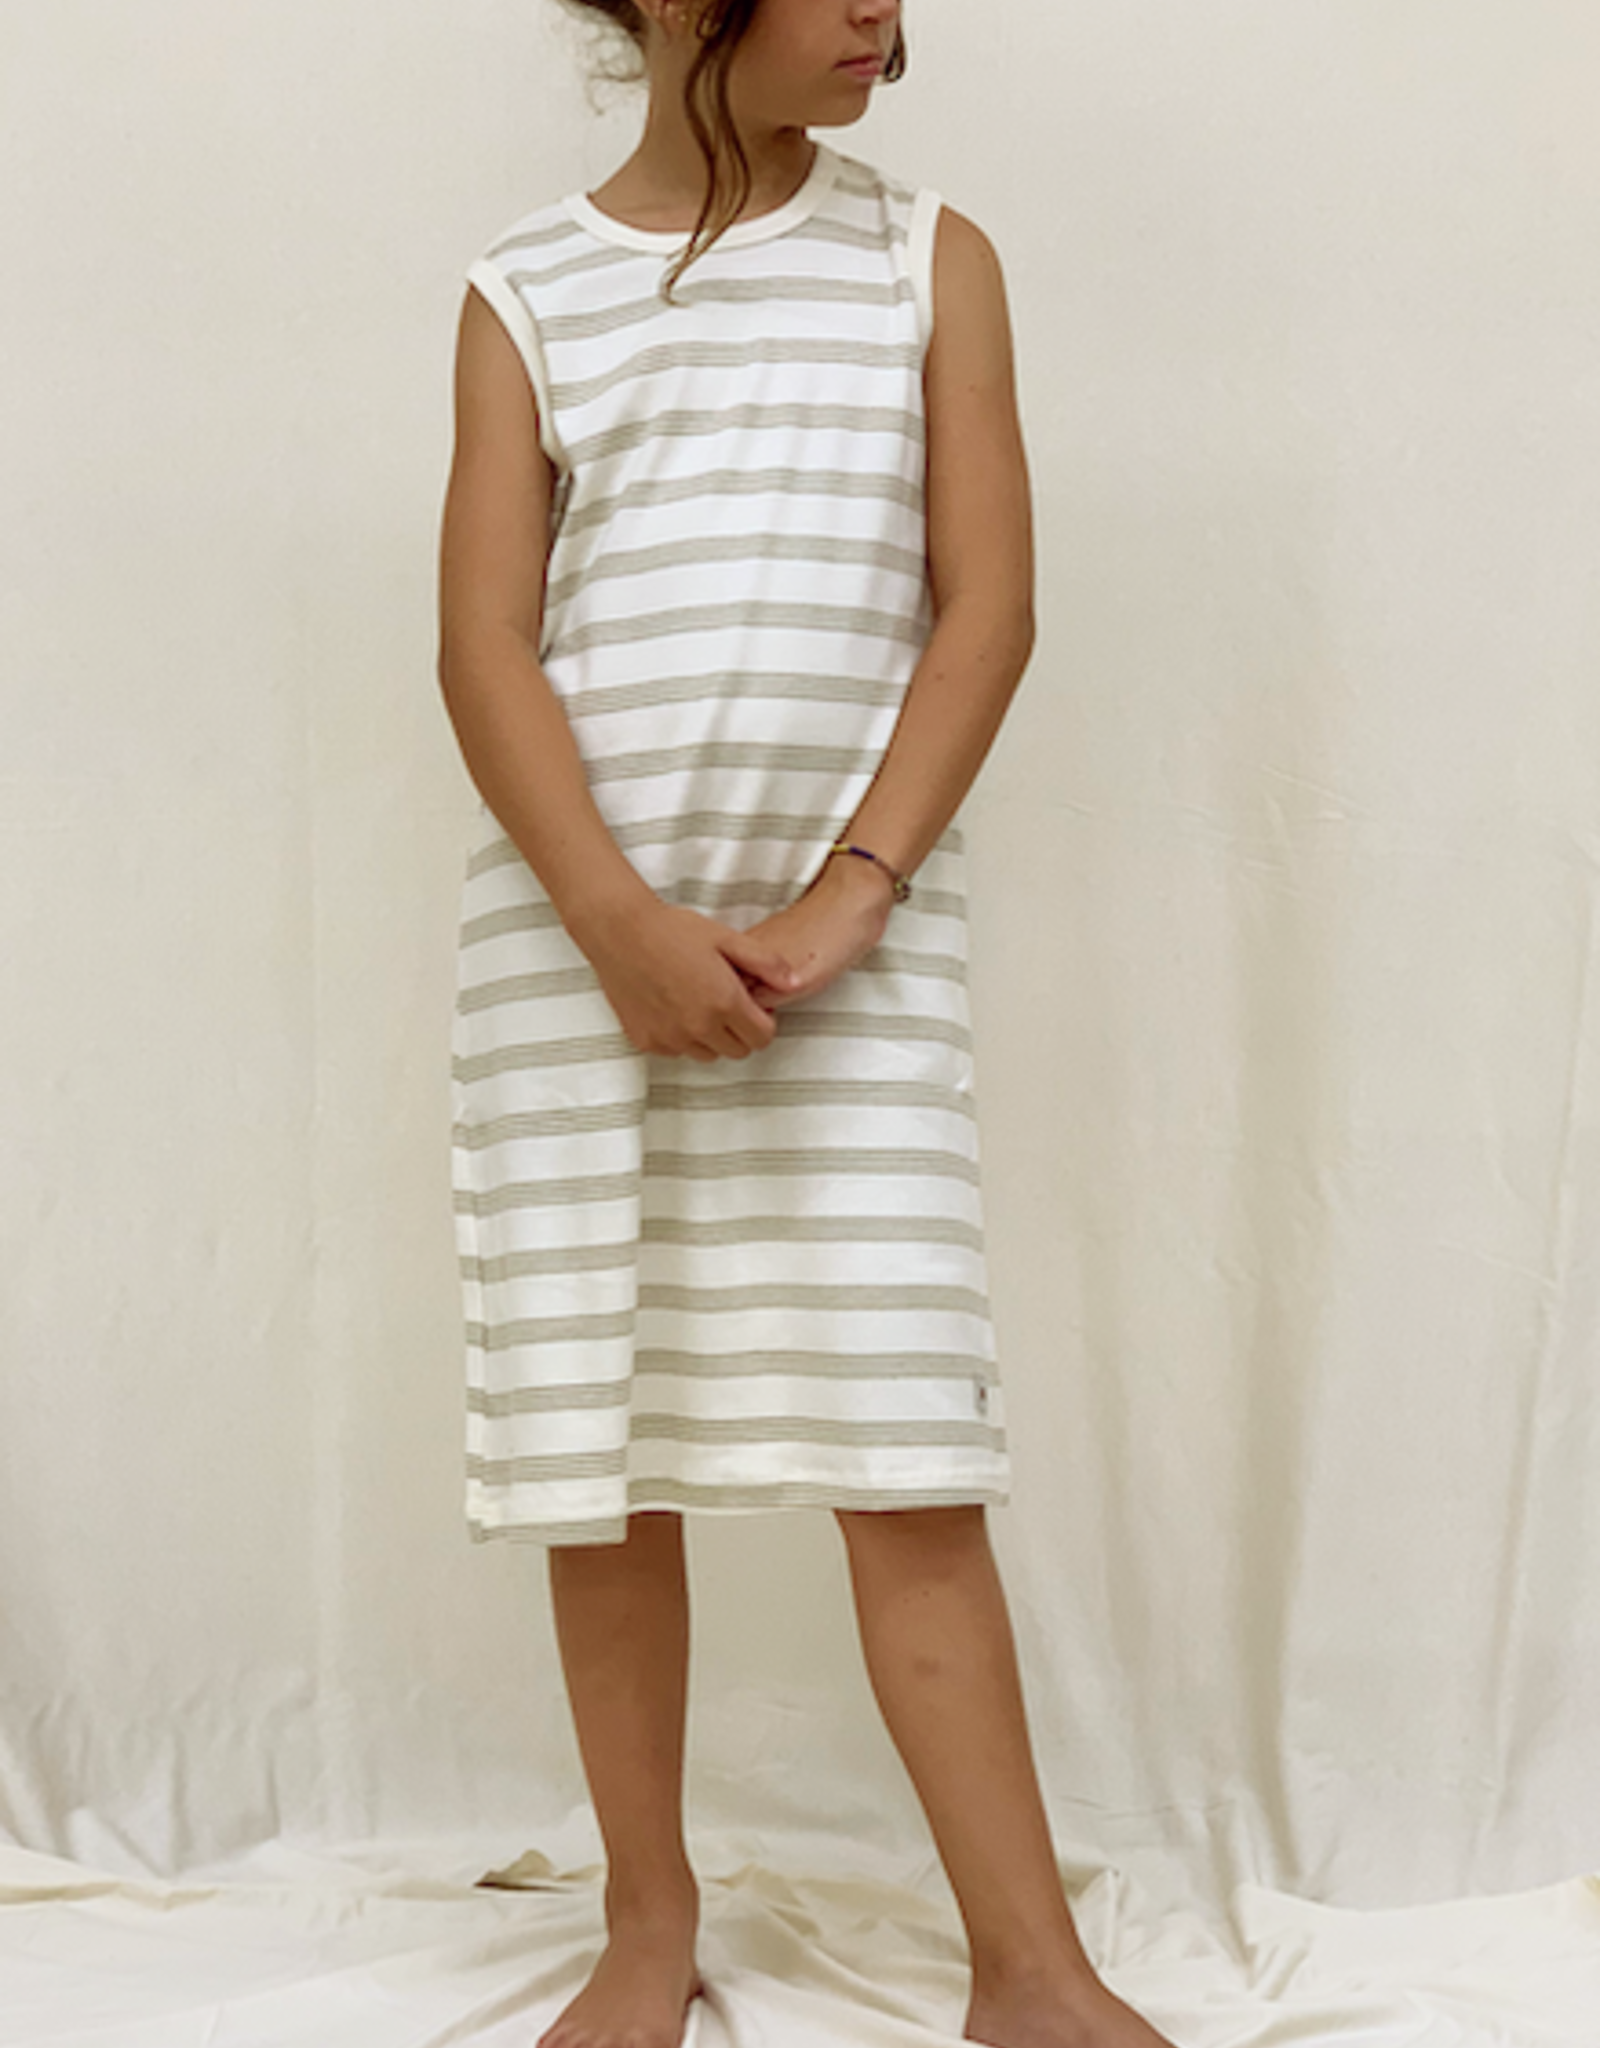 Junior sleeveless dress with stripes fabric. sizes 2, 4, 6 years.